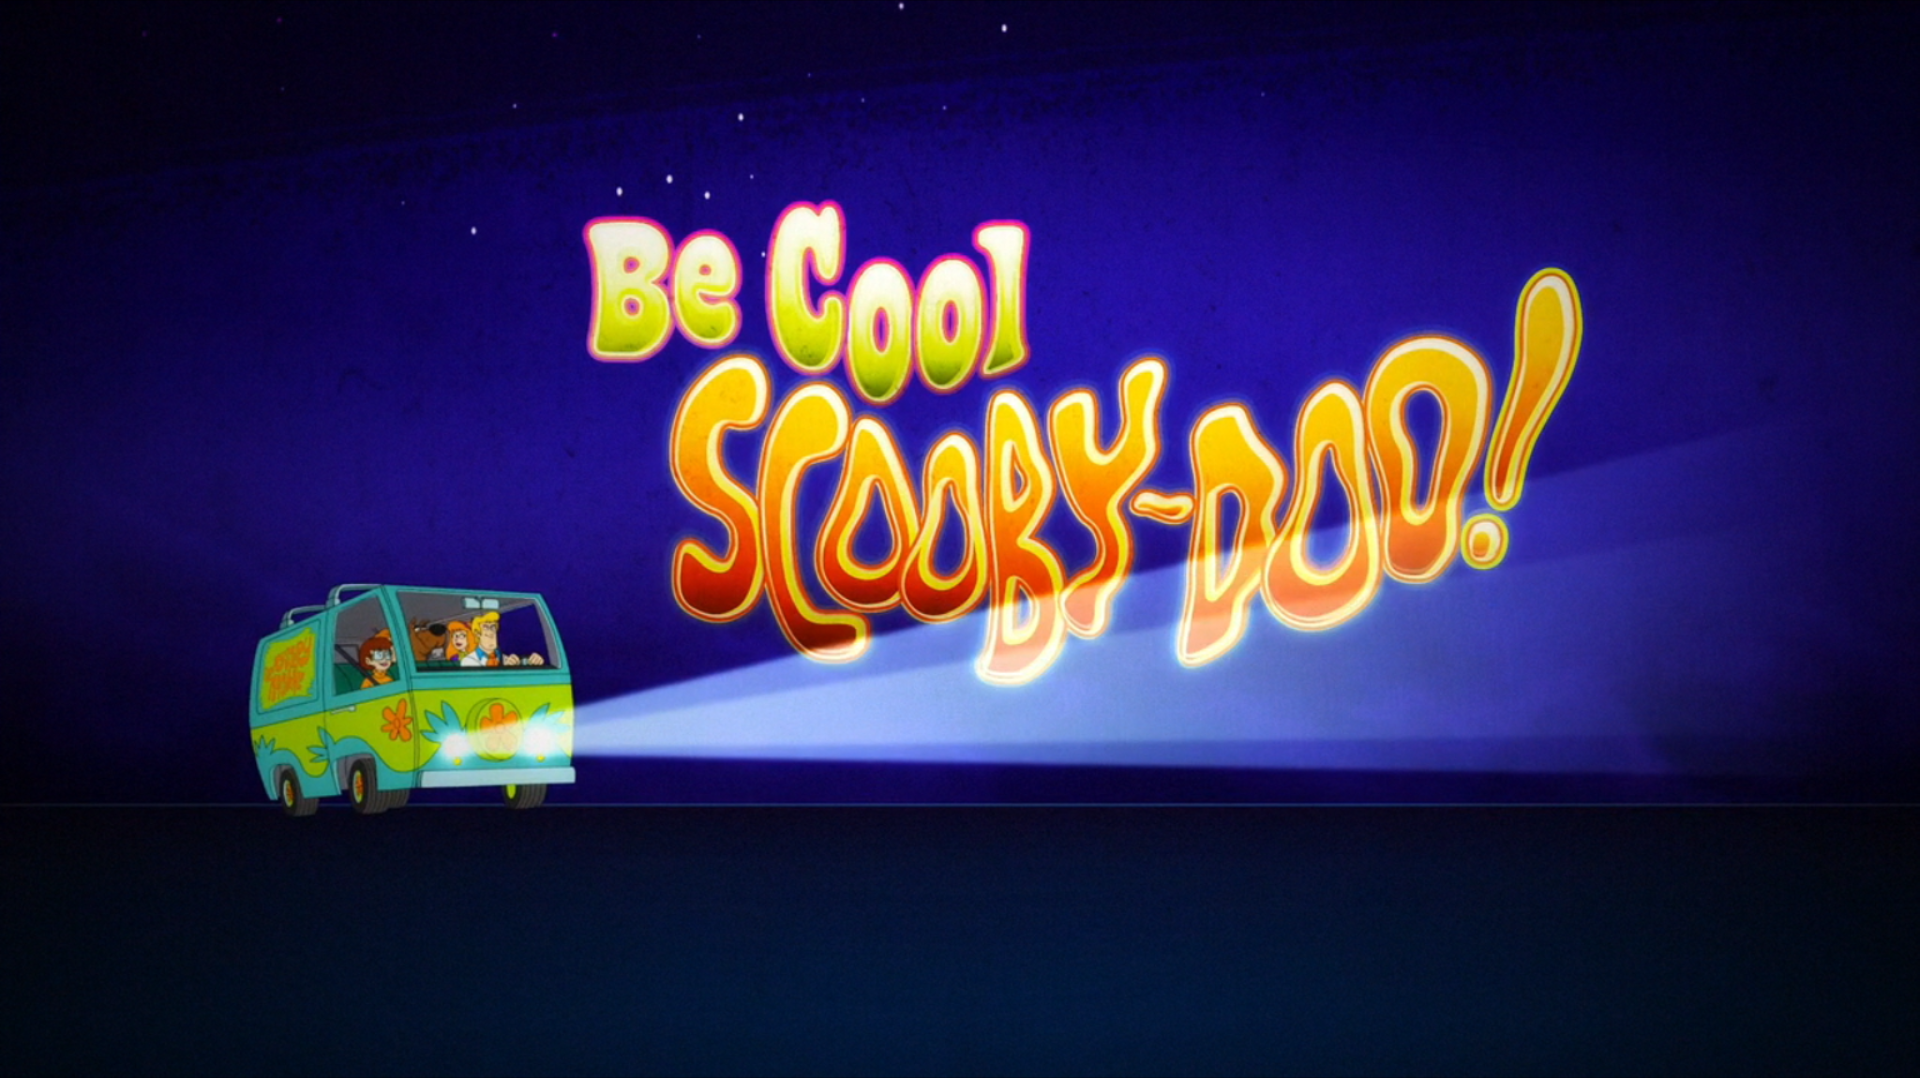 be cool scooby doo eating crow song